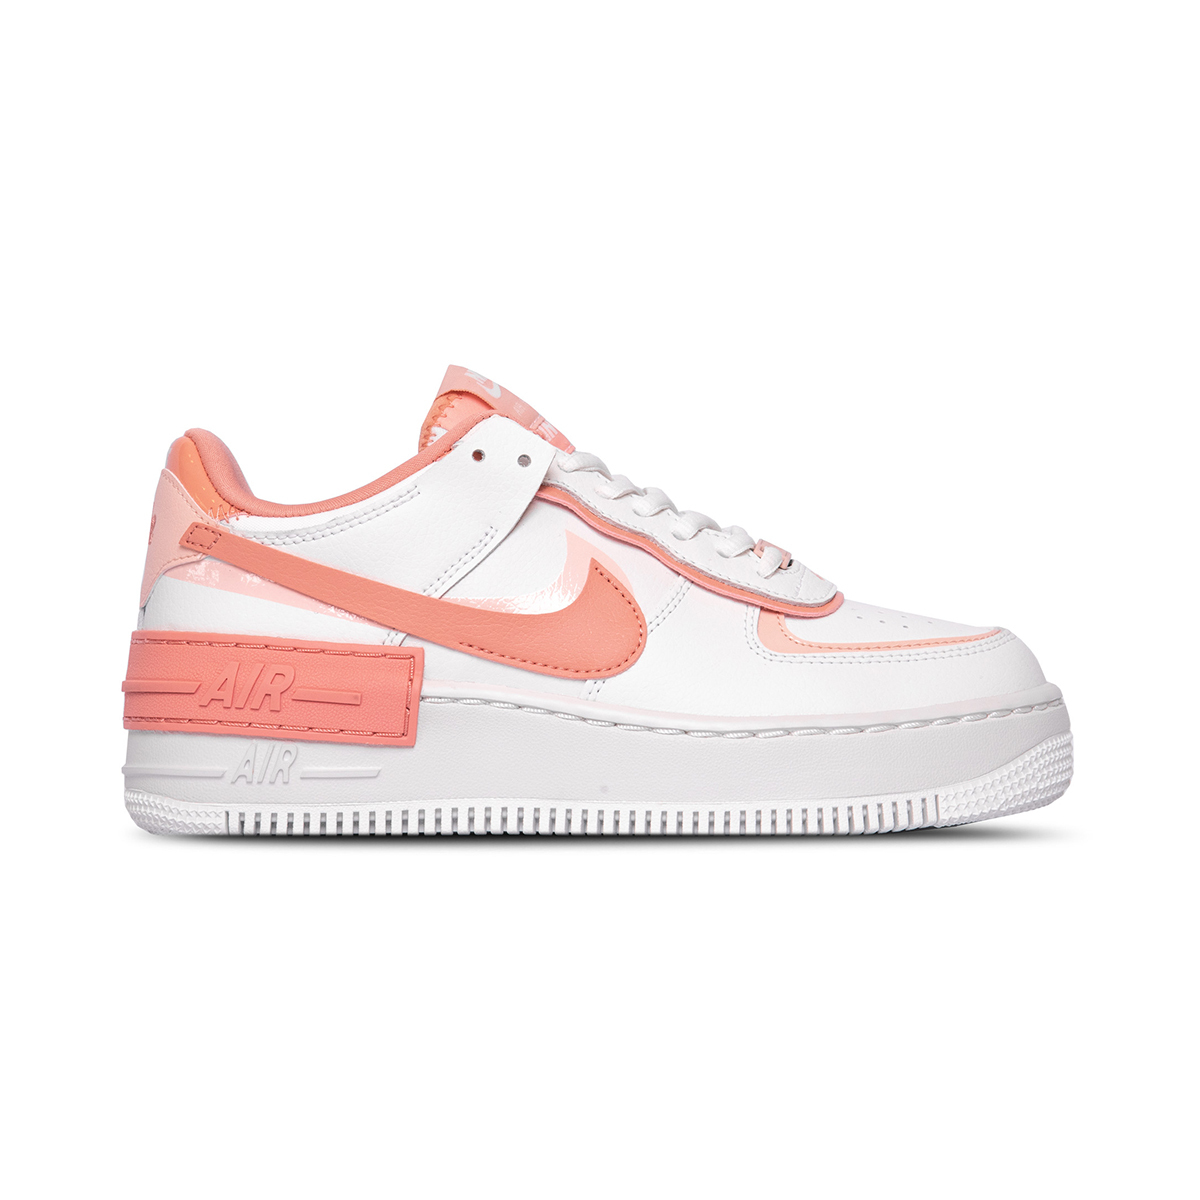 Primary image for Nike Women's Air Force 1 Shadow (Pink Quartz/ Summit White/ Coral) Sizes 6-10